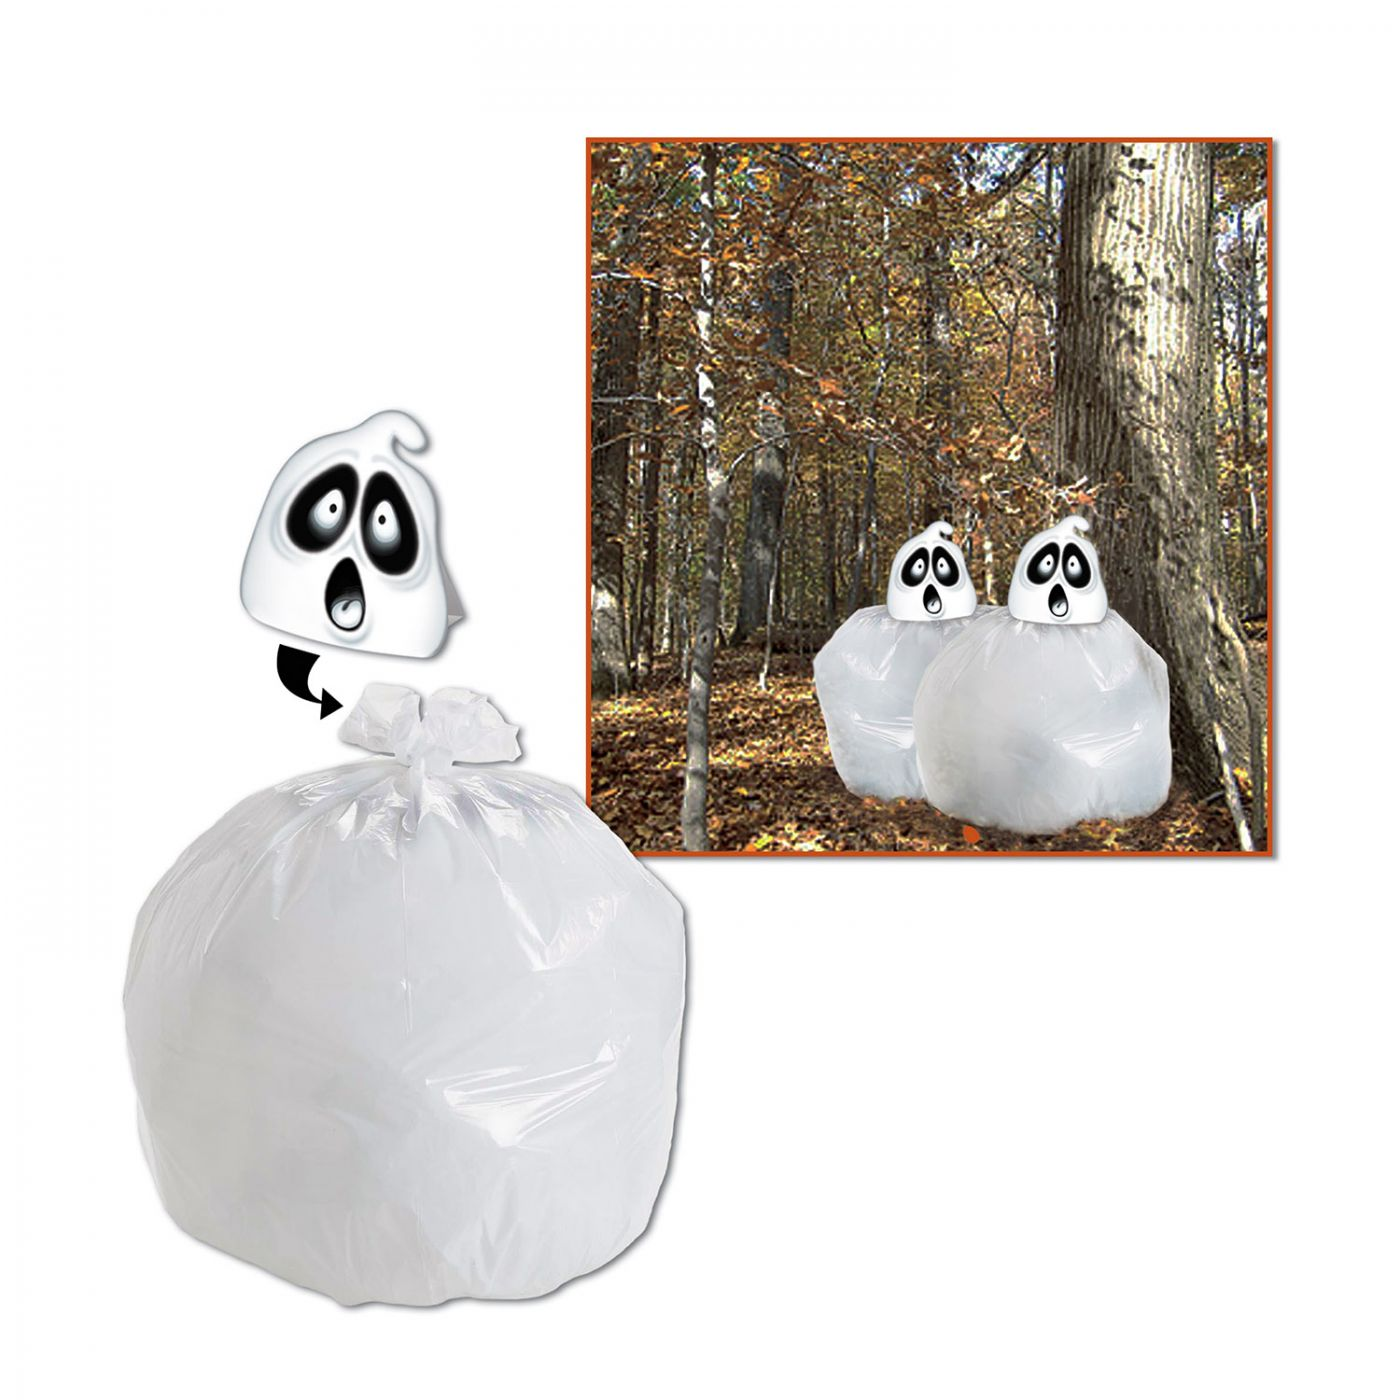 Spooky Spirit Leaf Bag image